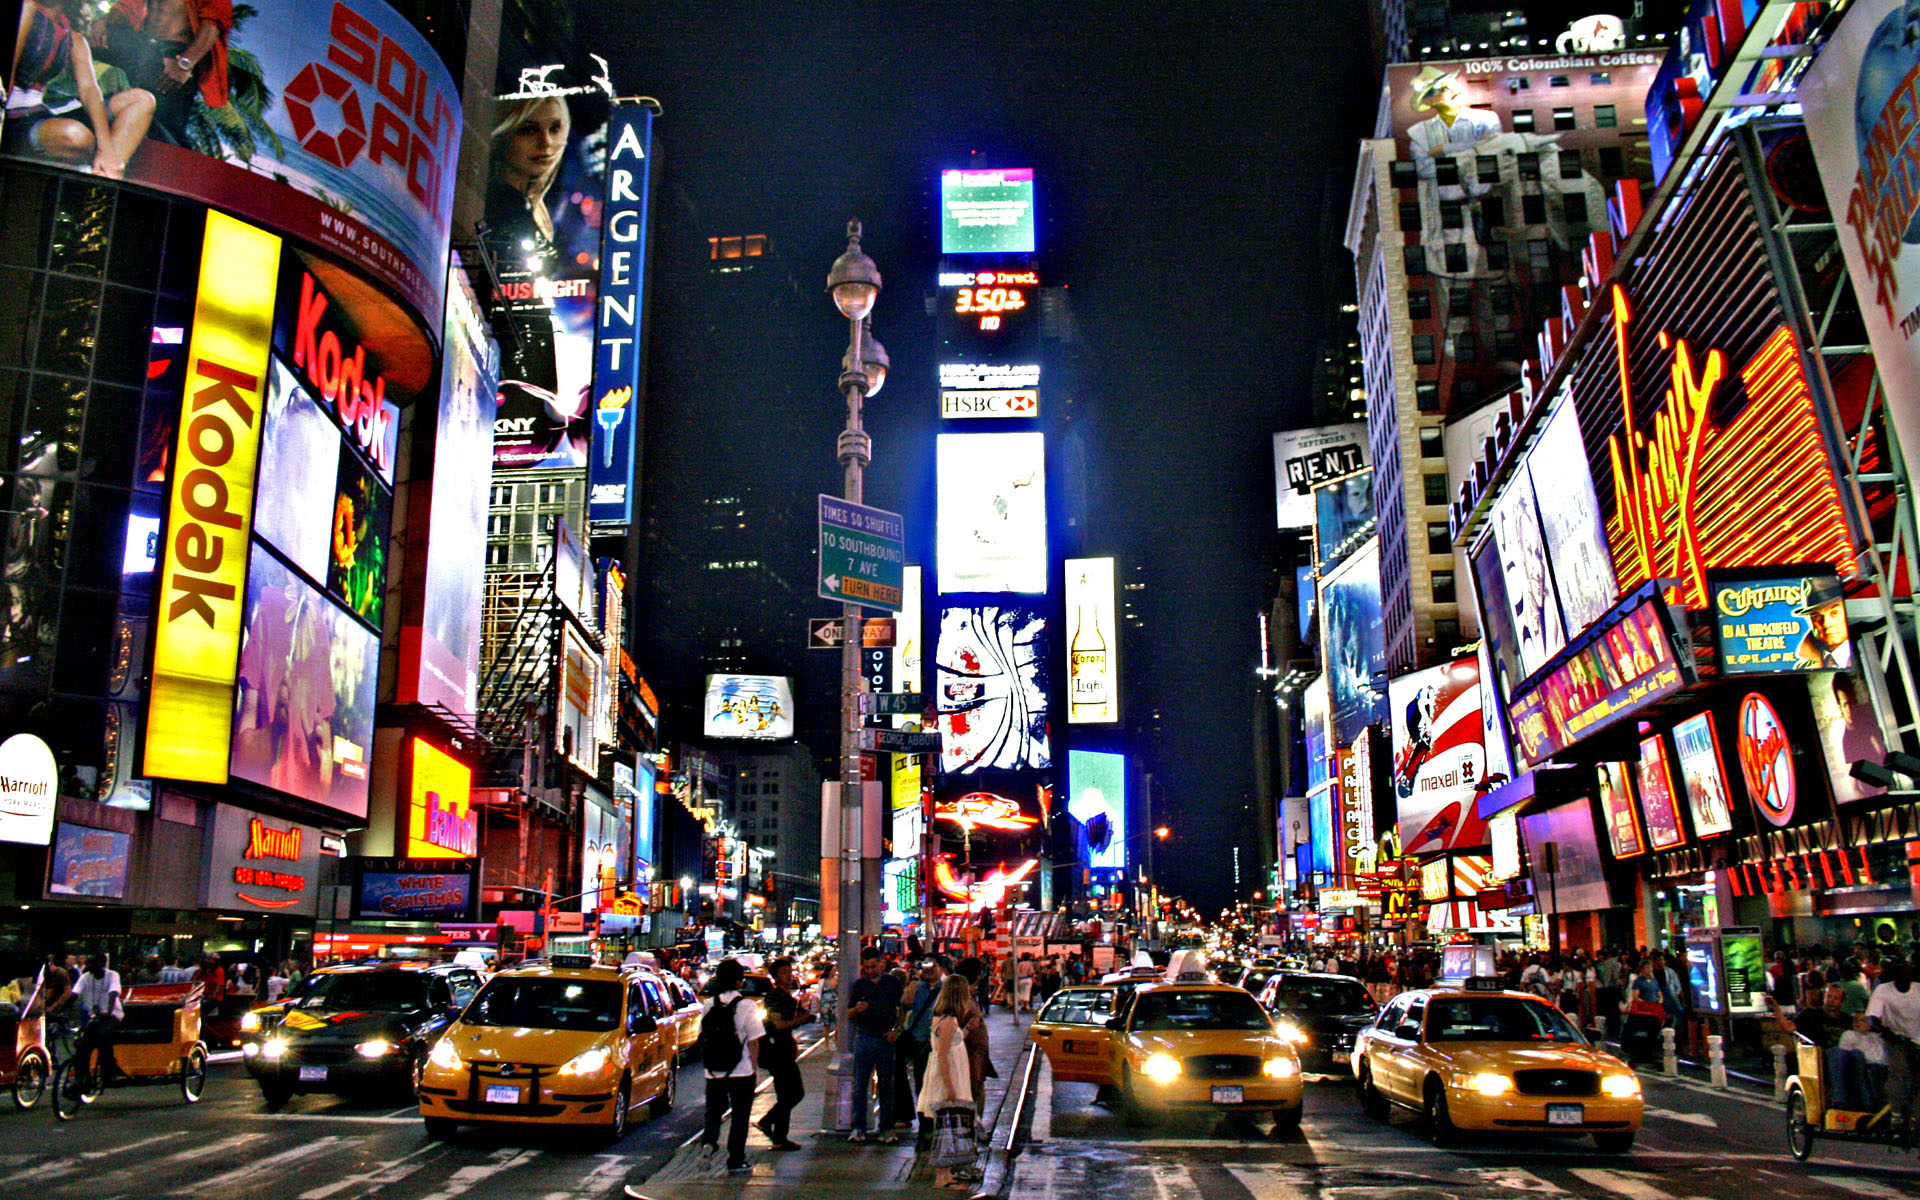 Times Square Wallpaper iPhone.